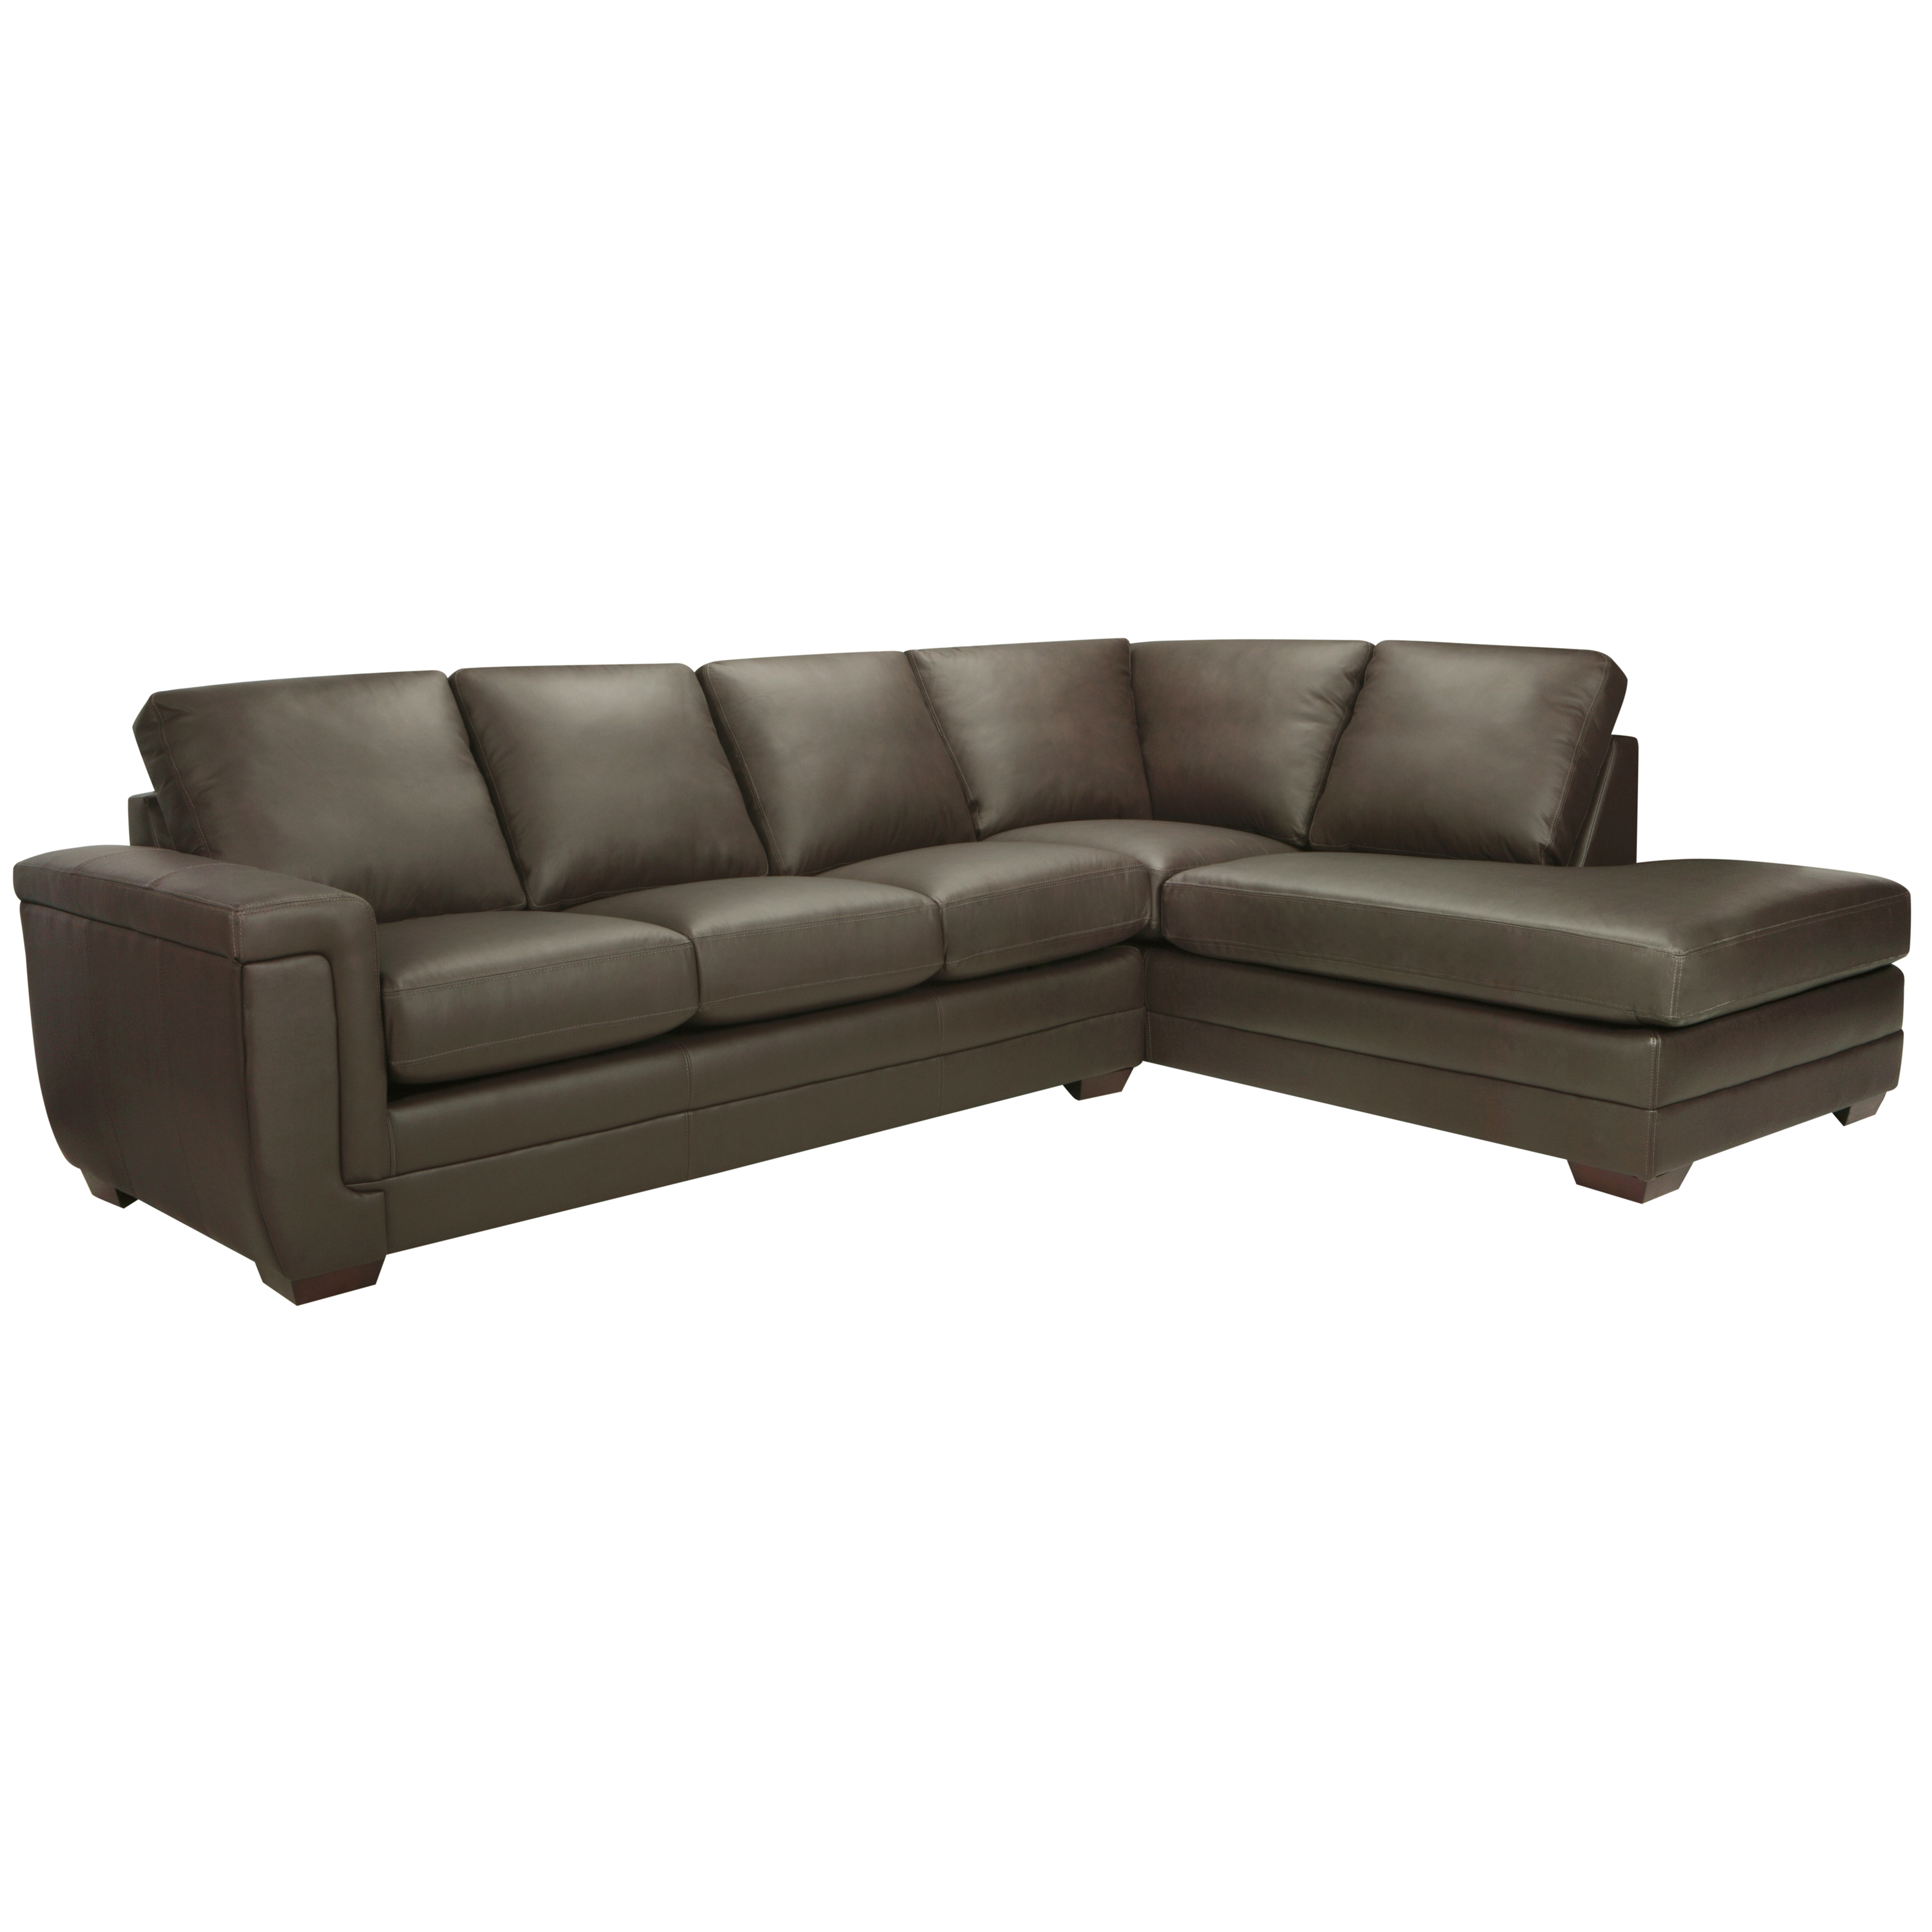 elegant black Sectional Couches for inspiring furniture ideas